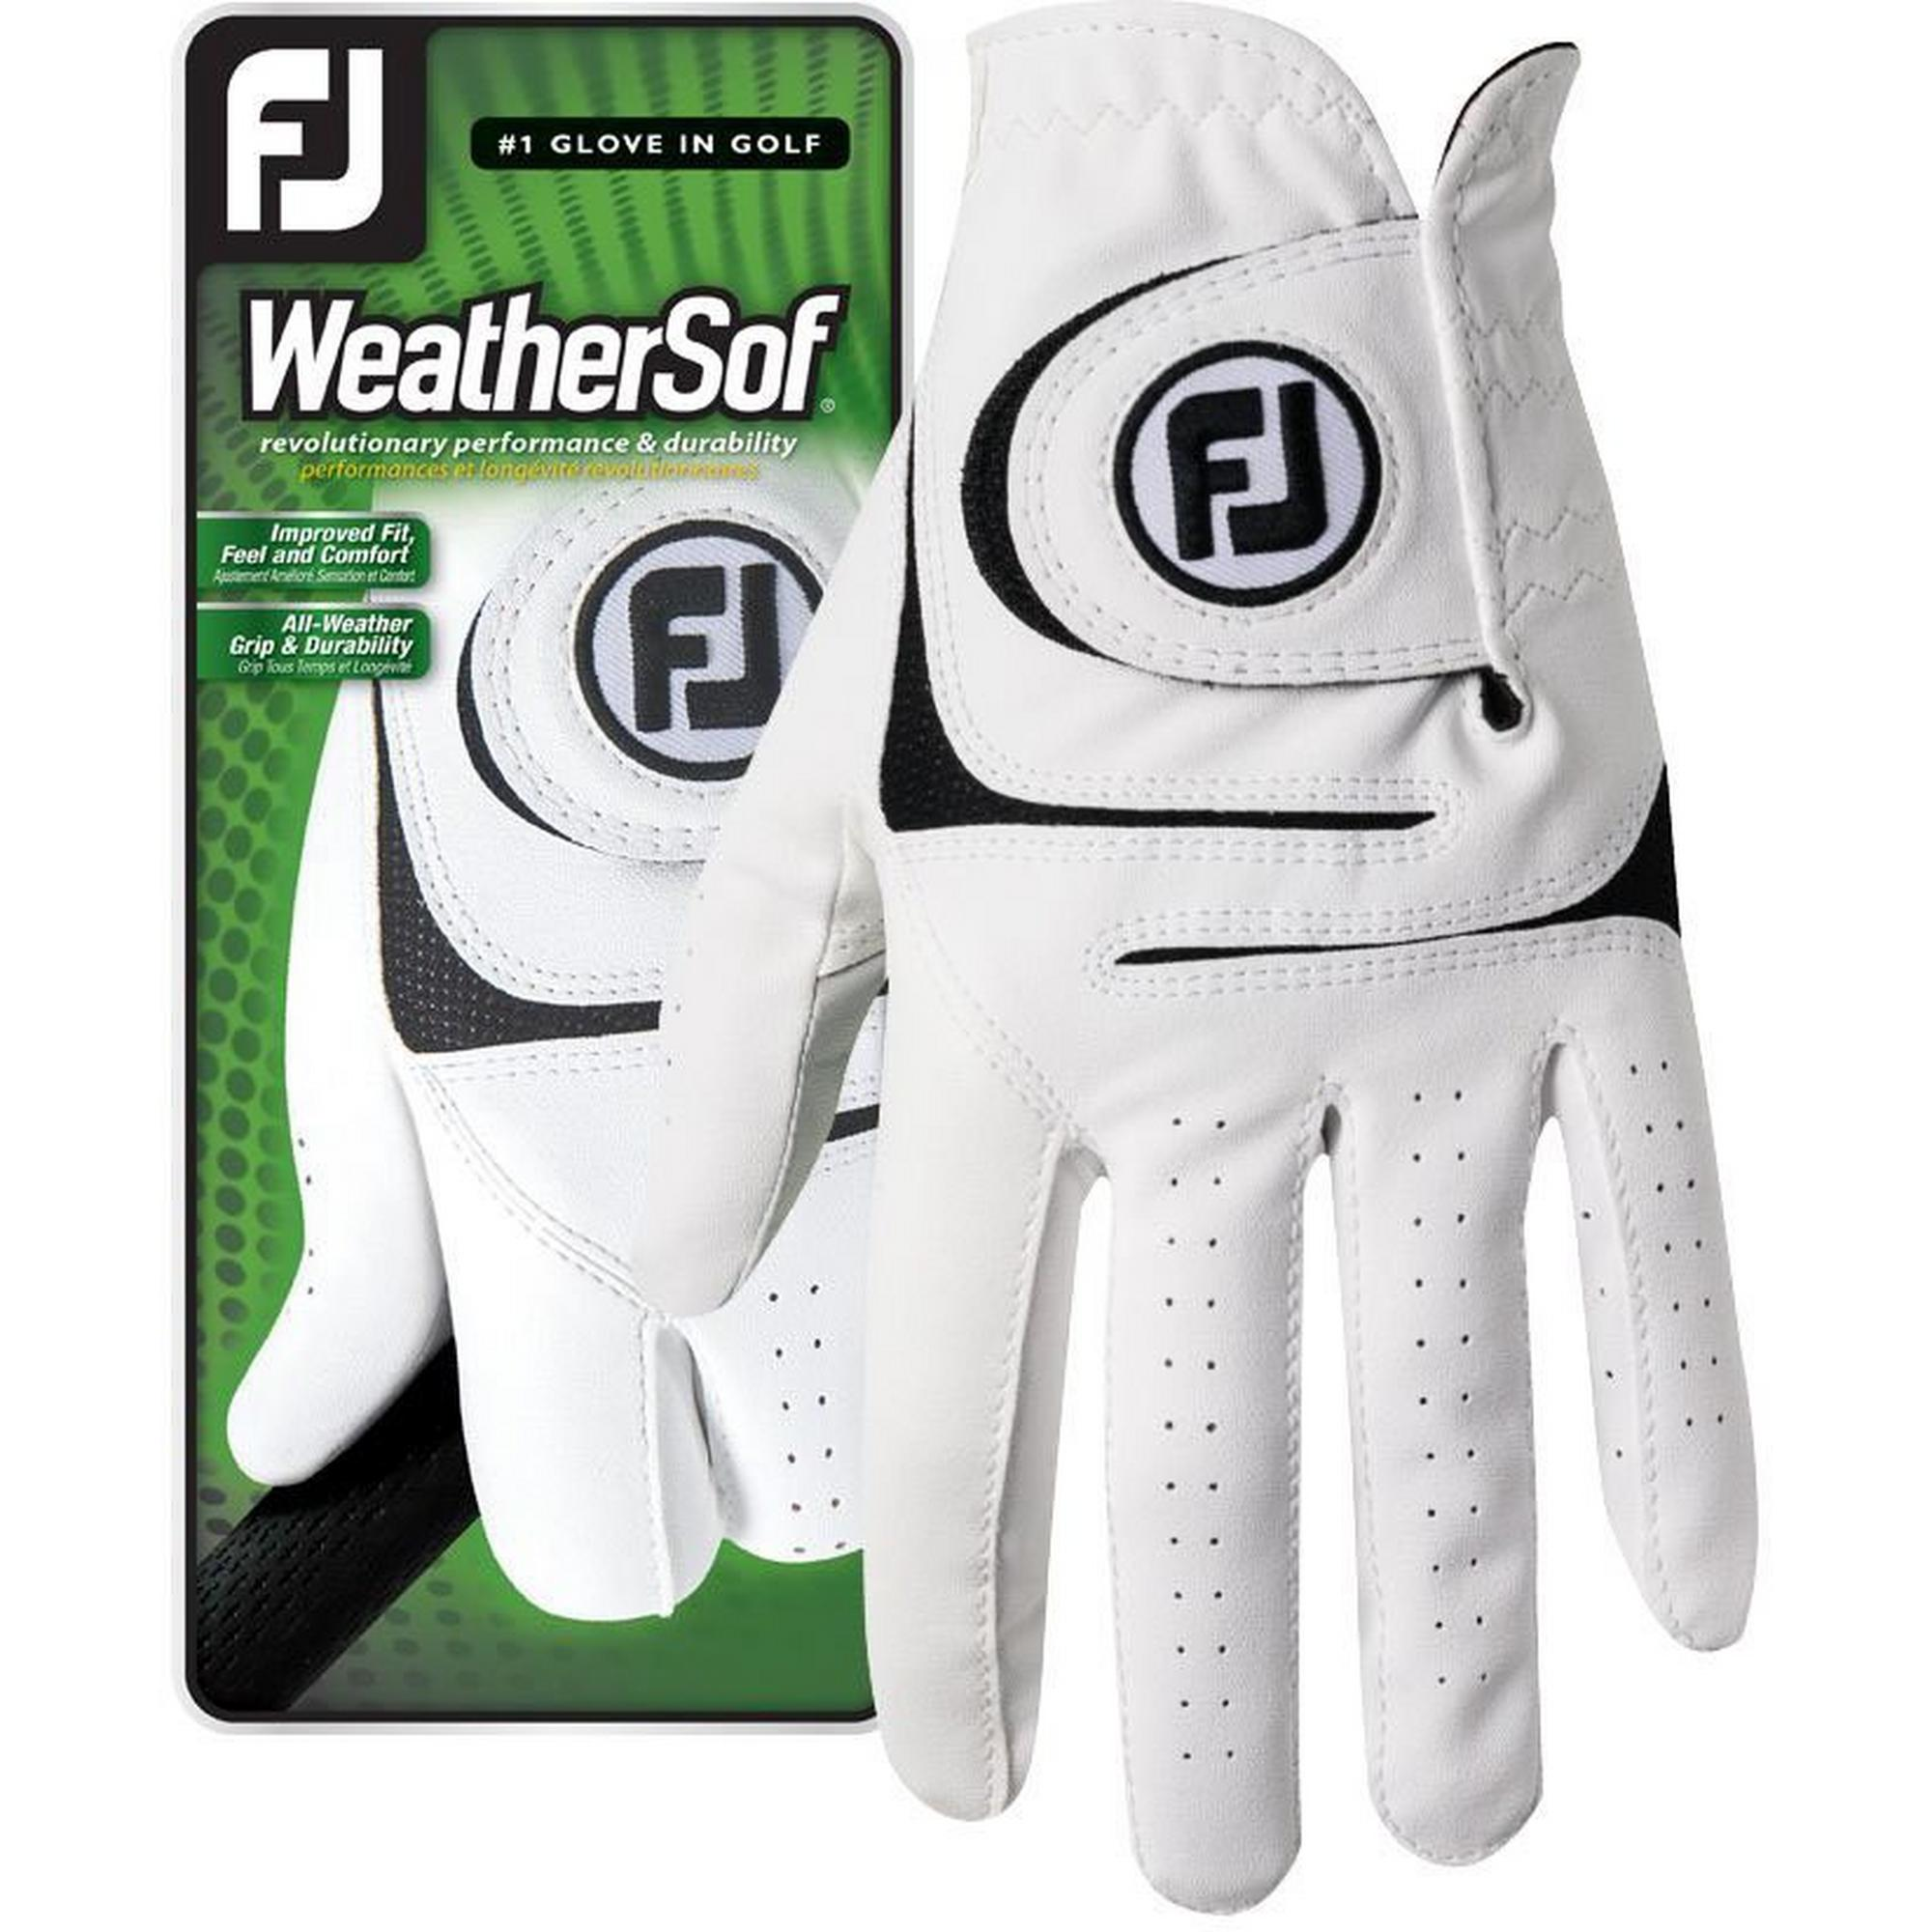 WeatherSof Cadet Mens Golf Glove